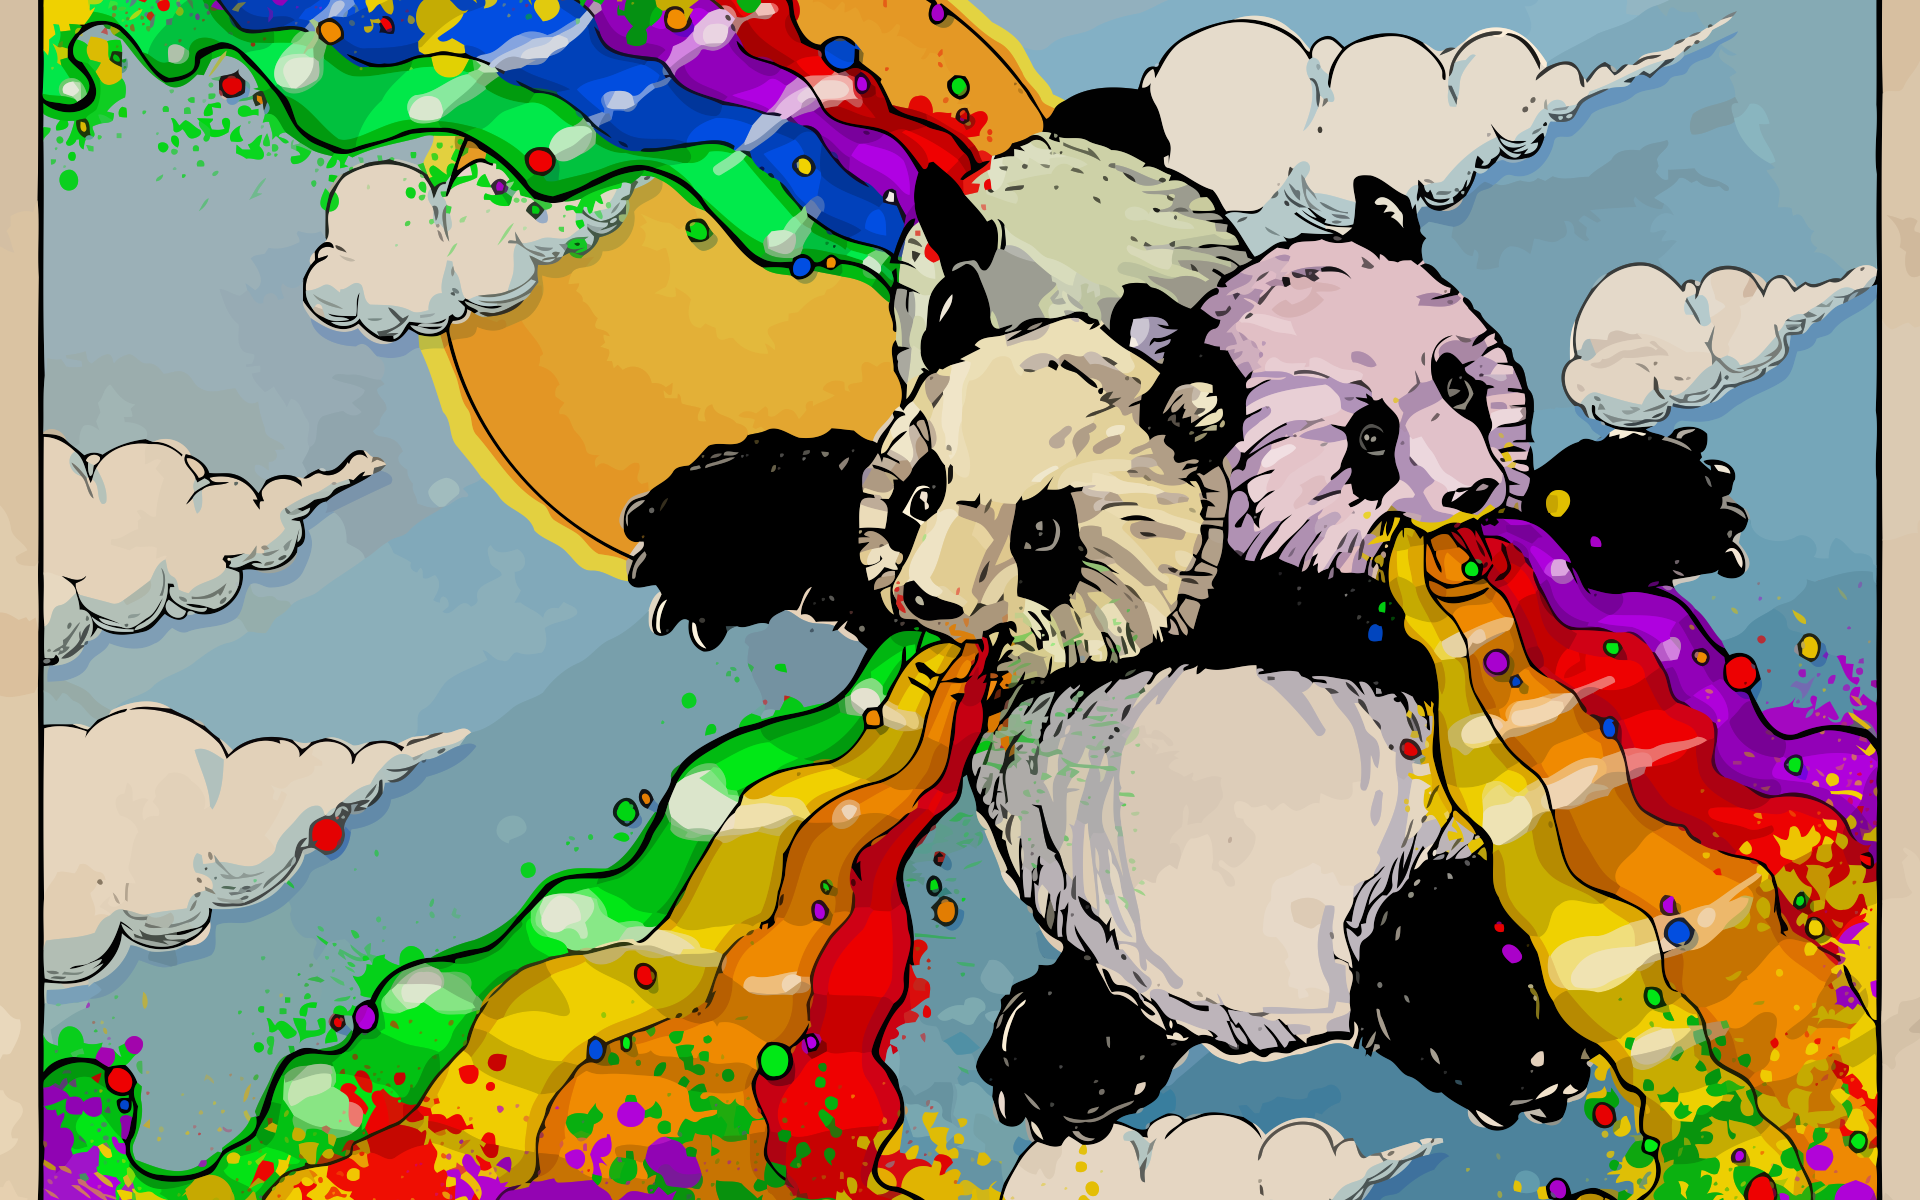 Rainbow Panda Full HD Wallpaper and Background Image ...